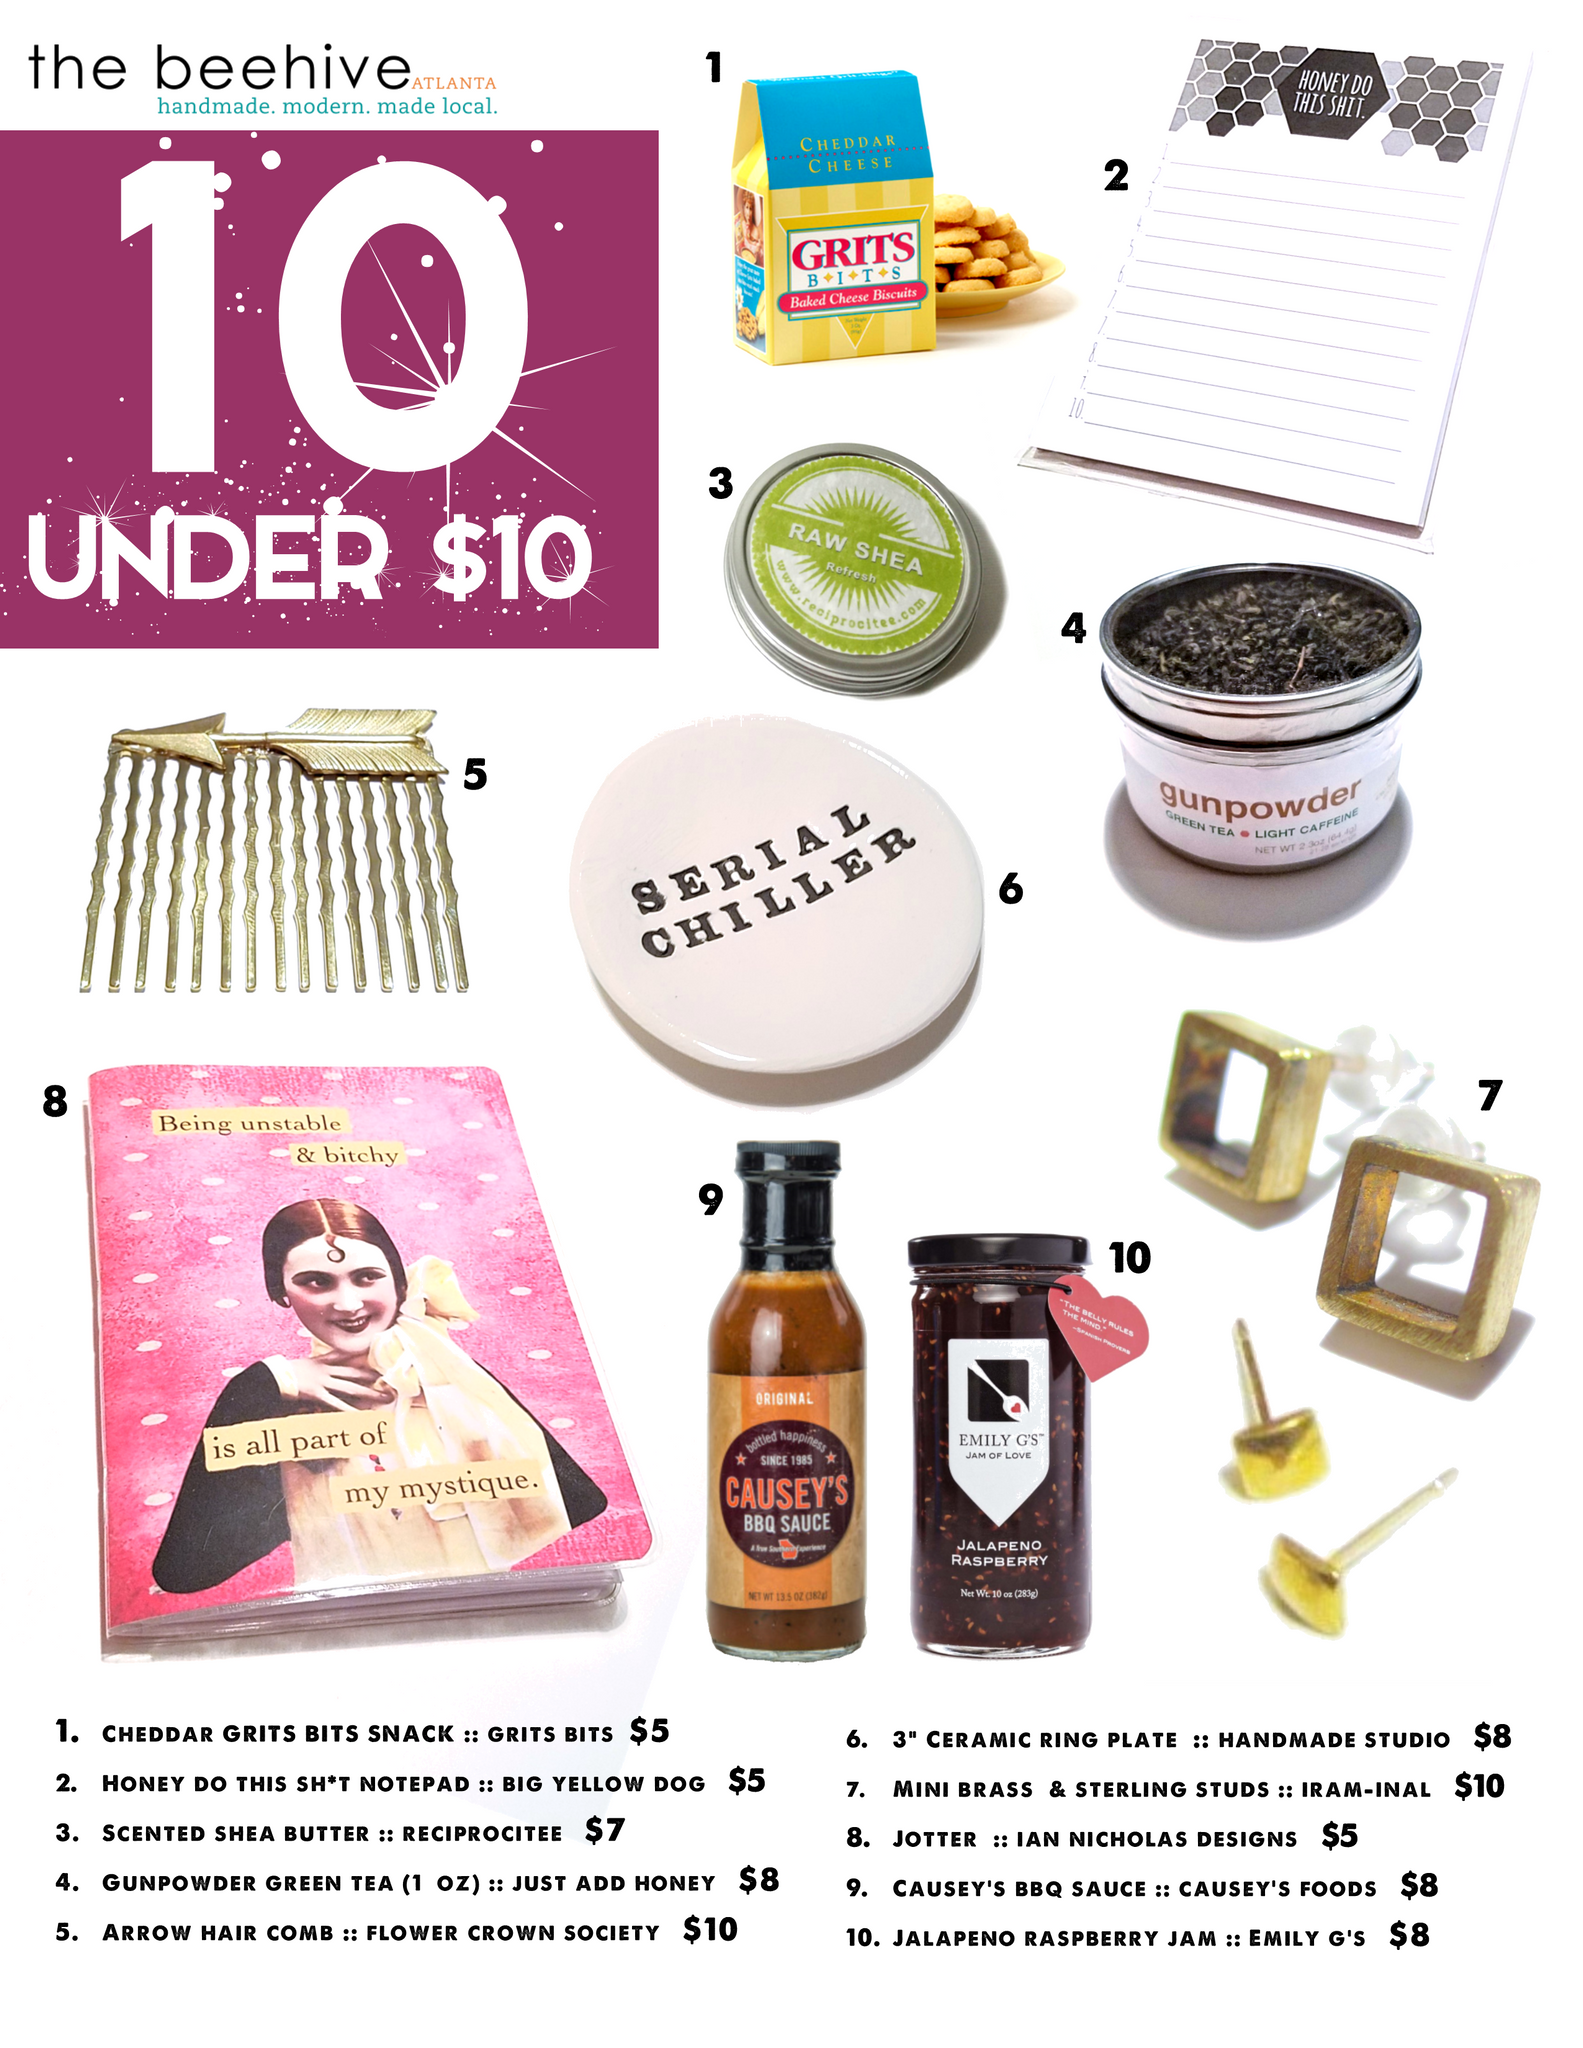 Holiday gift guide picks - under $10